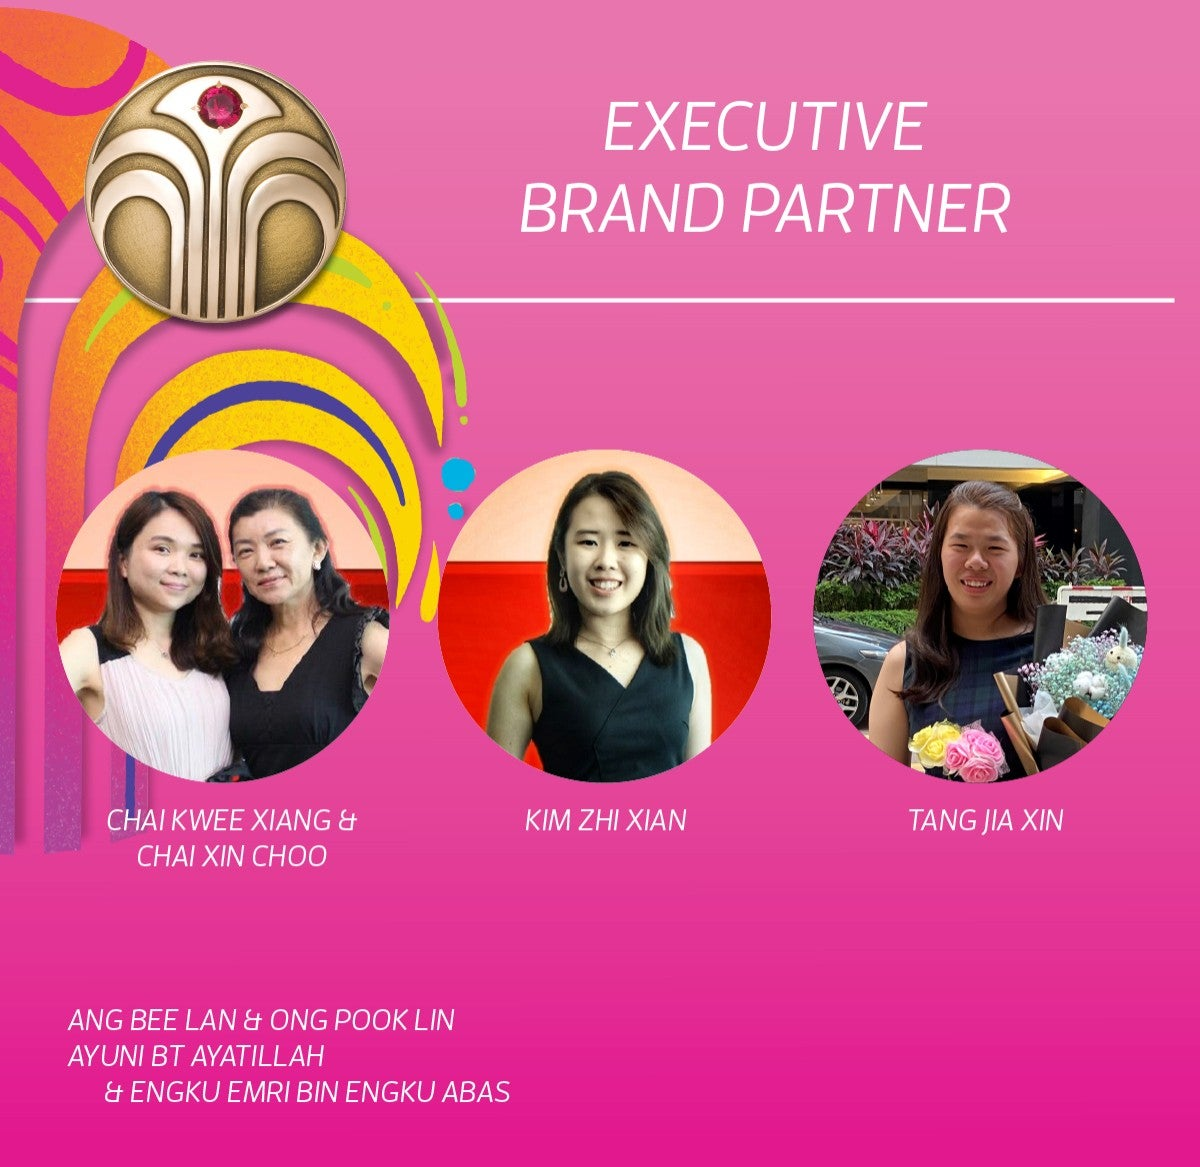 MY-Pin-advacenment_ExecBrandPartner_Feb2020